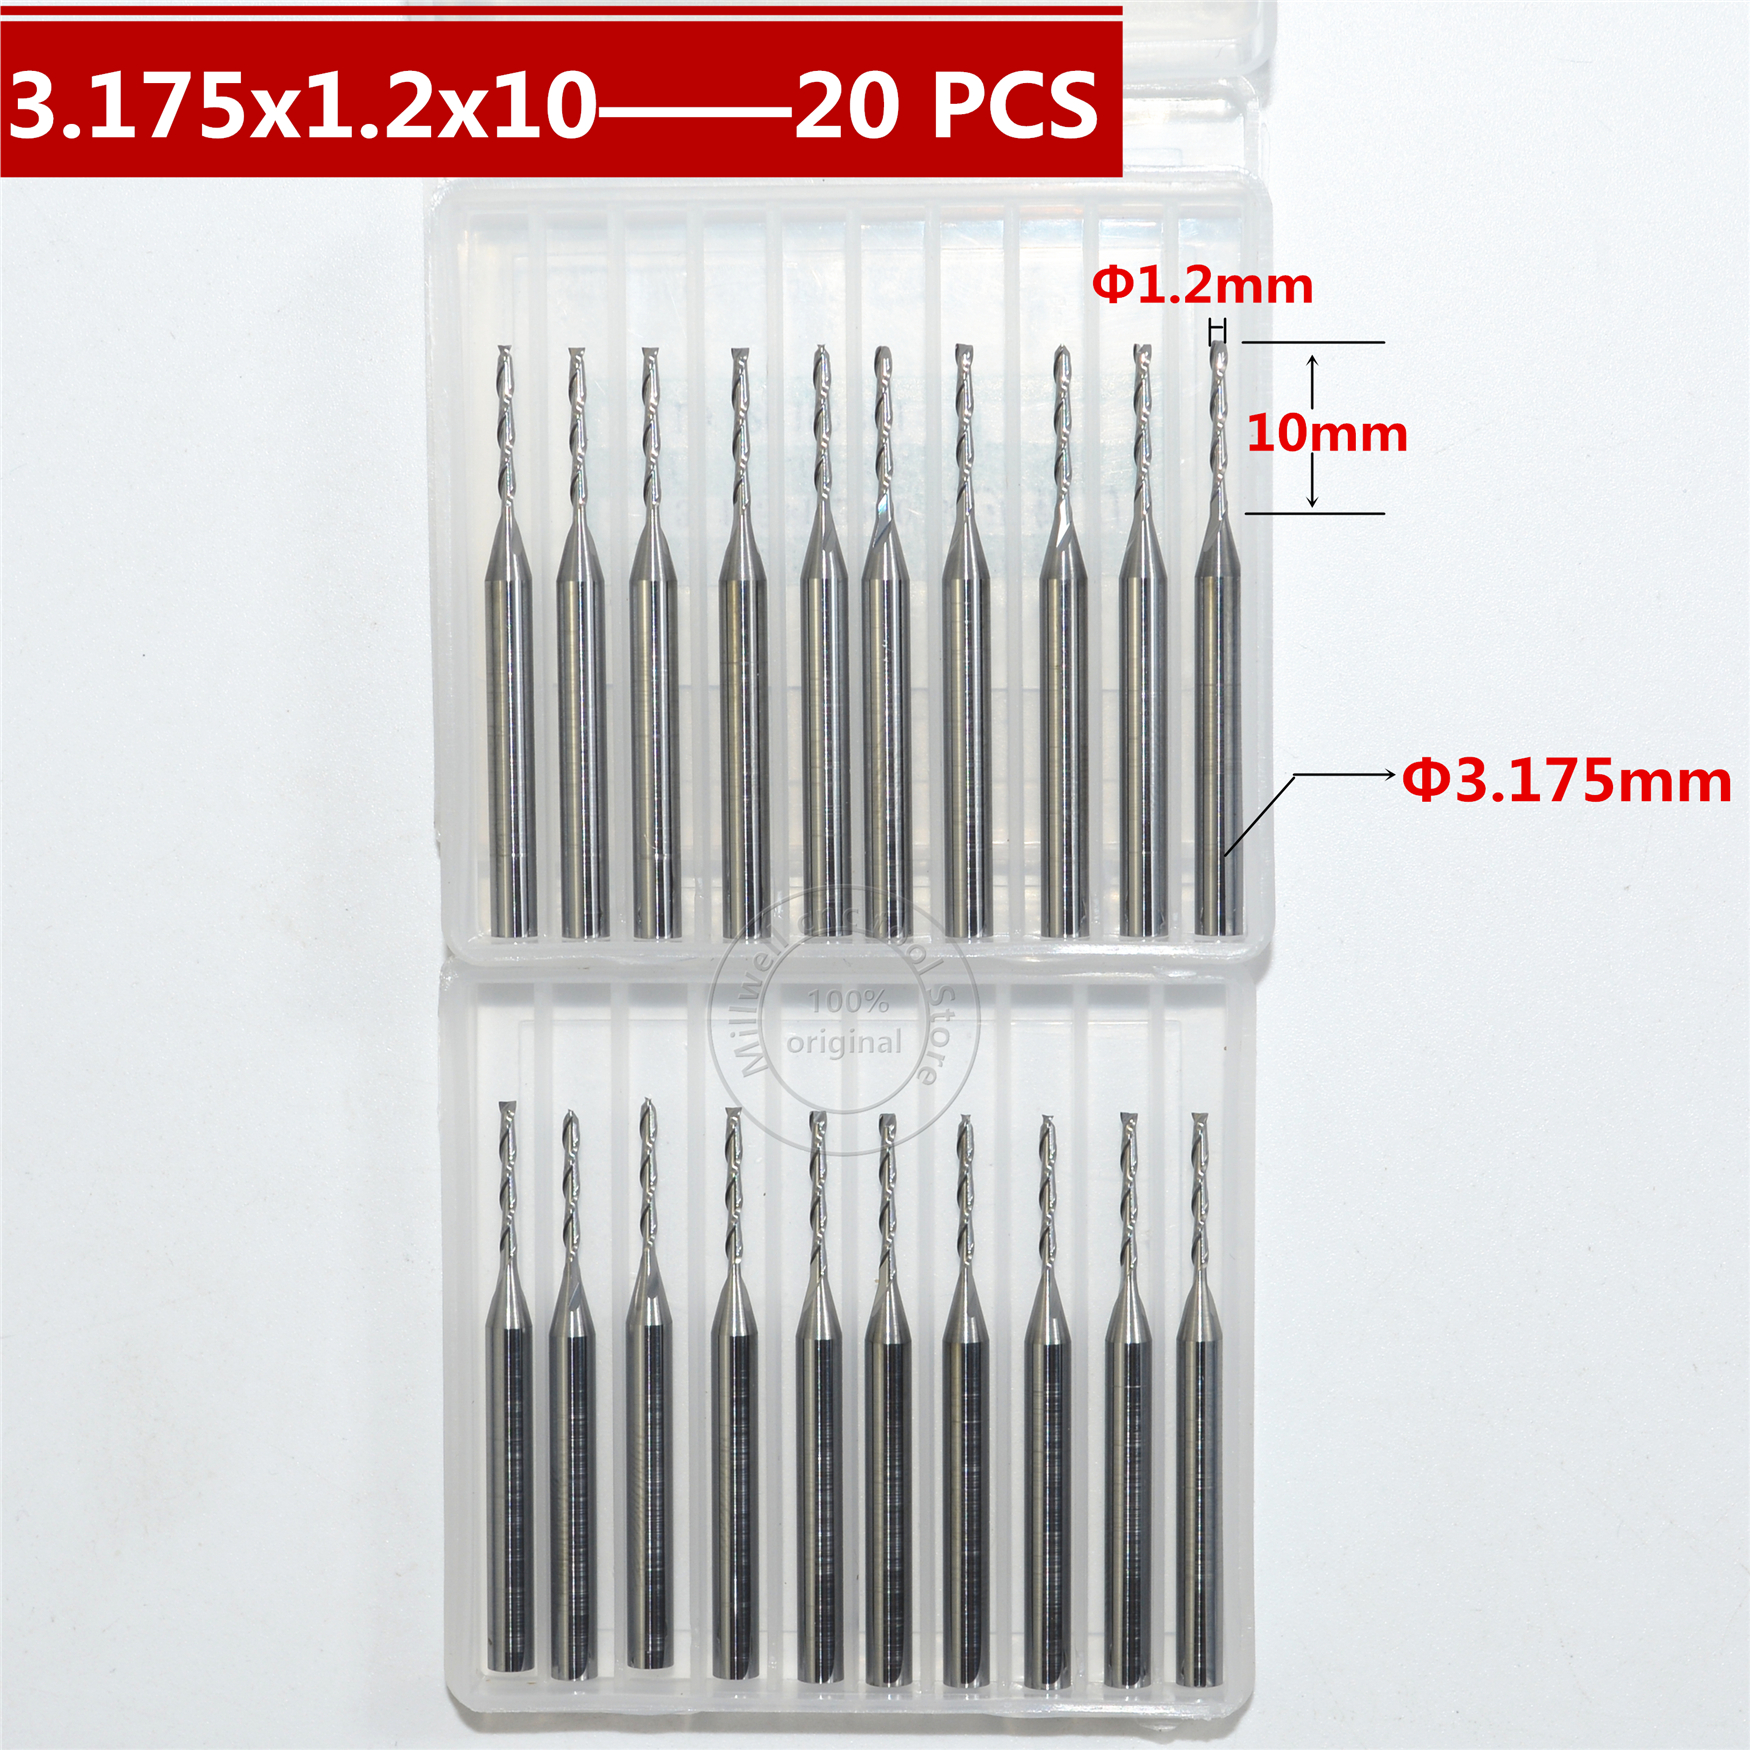 3 175mm 1 2mm 10mm Freeshipping CNC wood tools carbide End Mill woodworking insert router bit